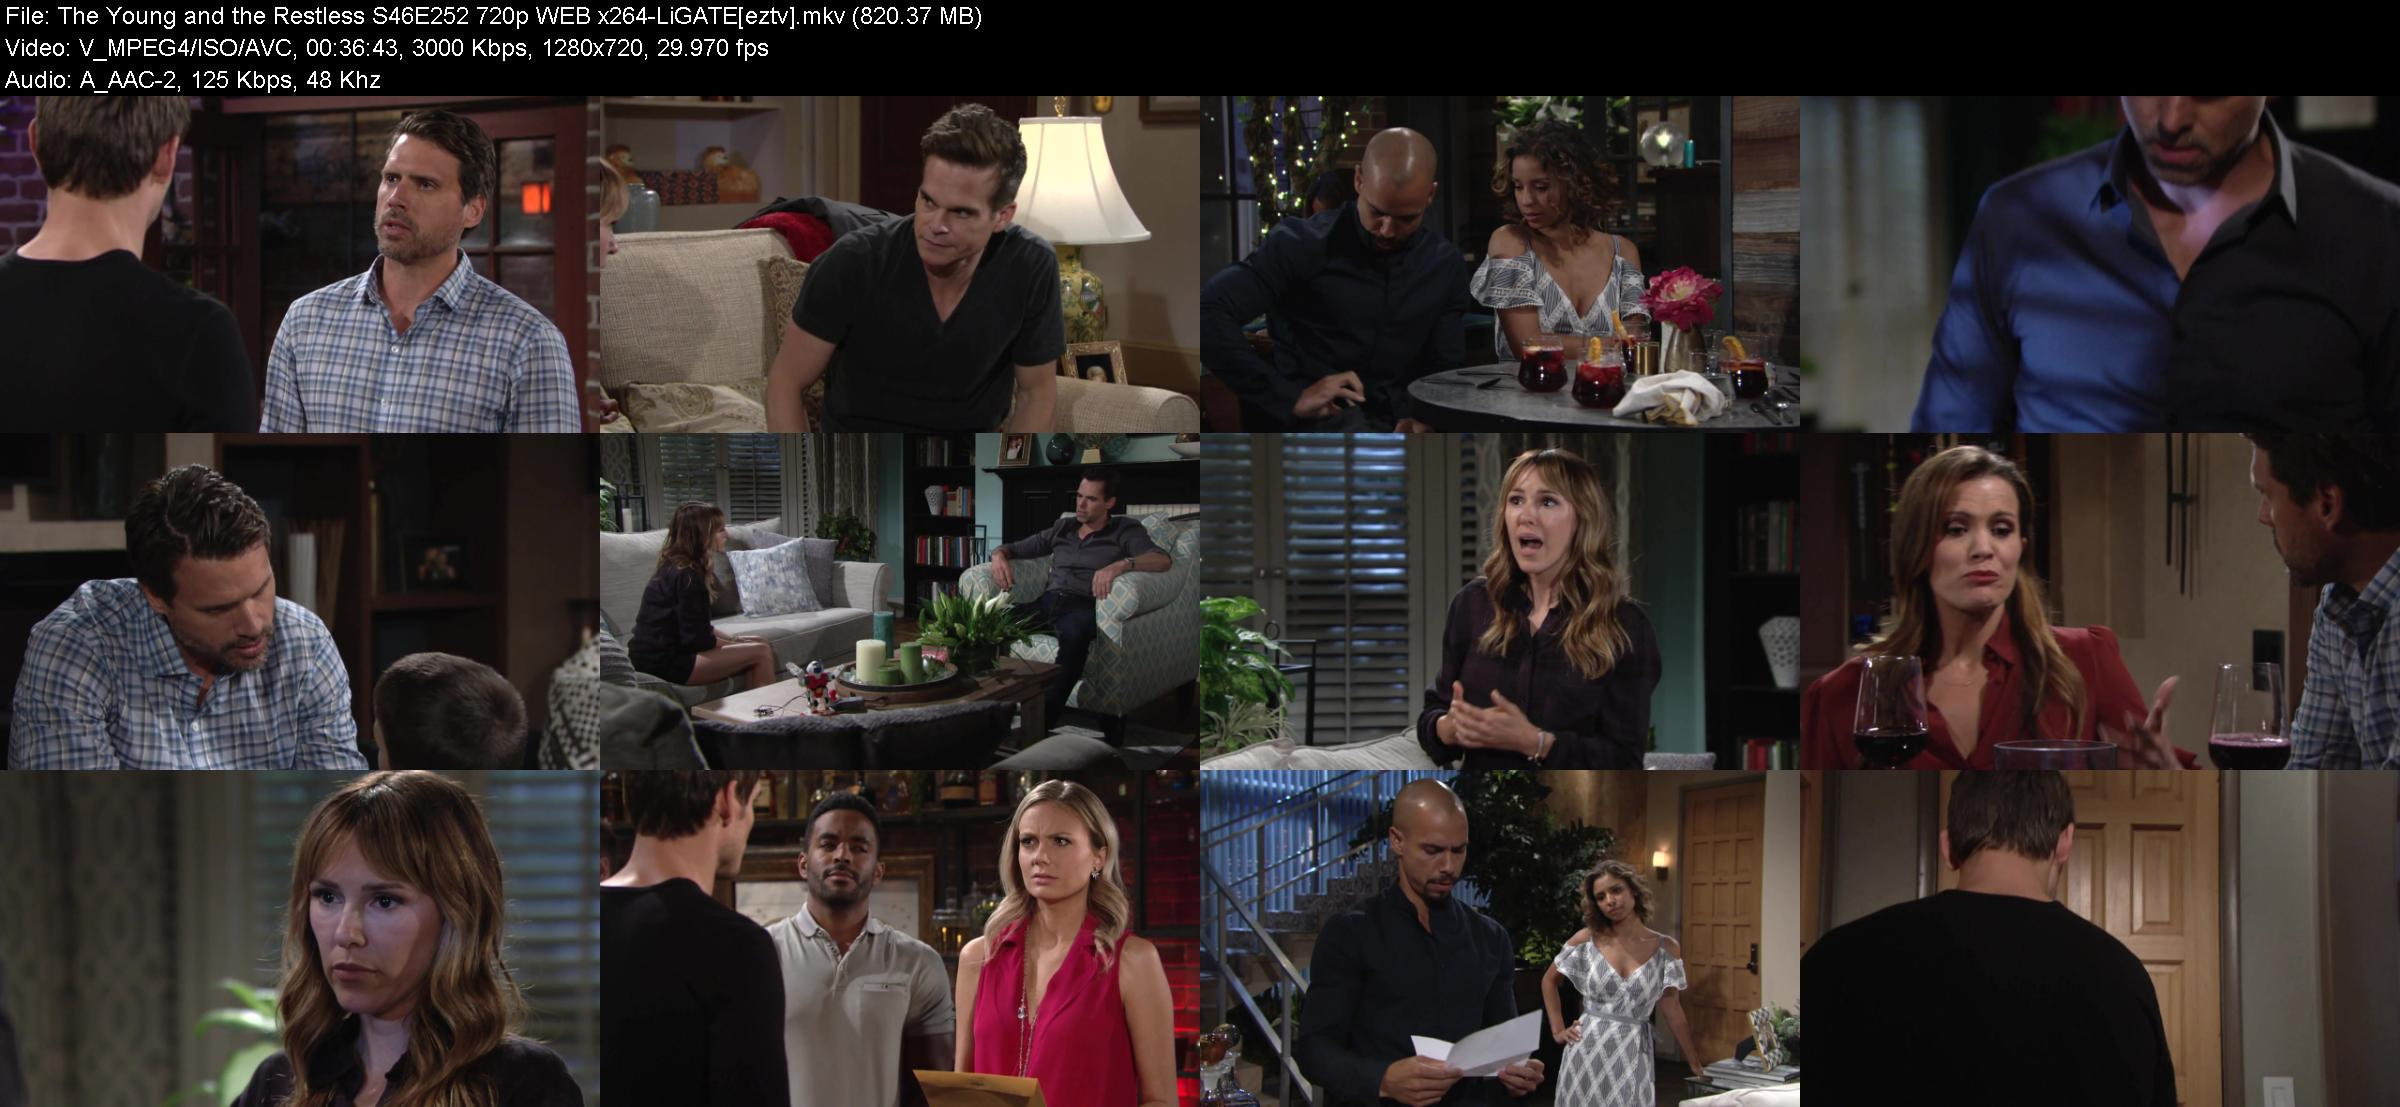 The Young and the Restless S46E252 720p WEB x264-LiGATE